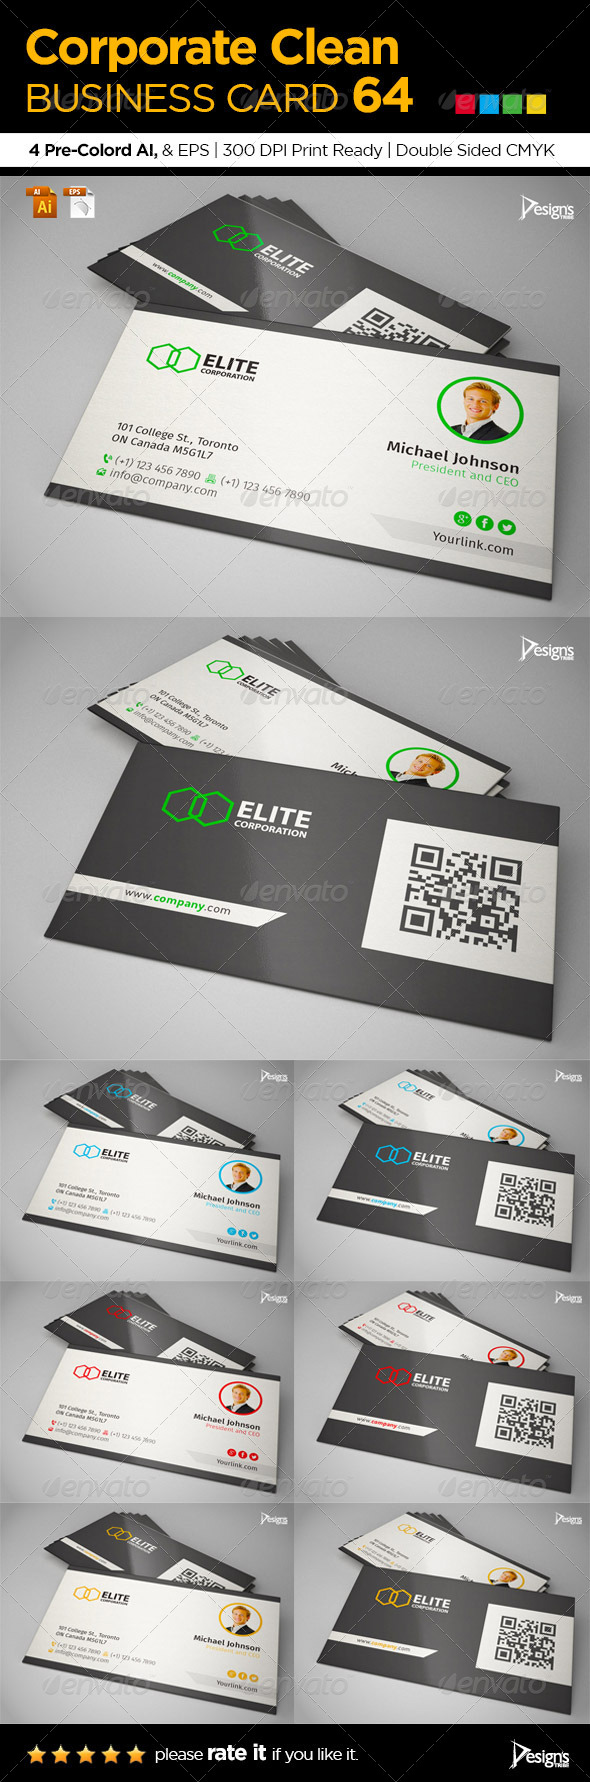 Corporate Clean Business Card 64 - Business Cards Print Templates